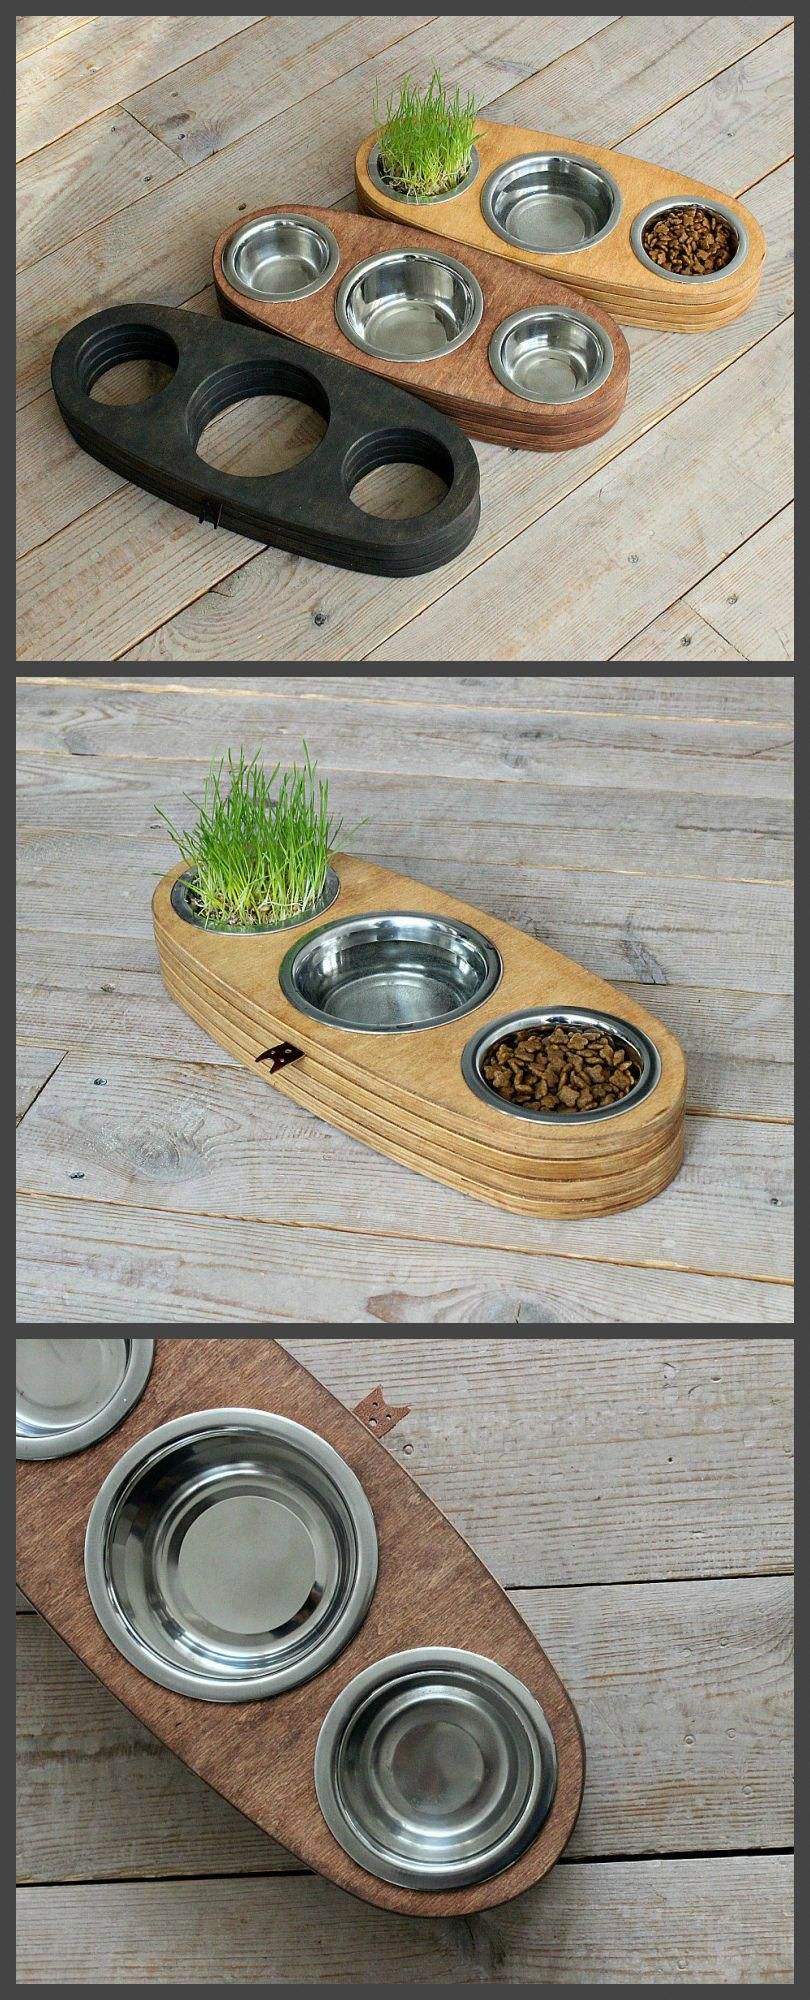 Pin on Cool cat food bowls and feeders